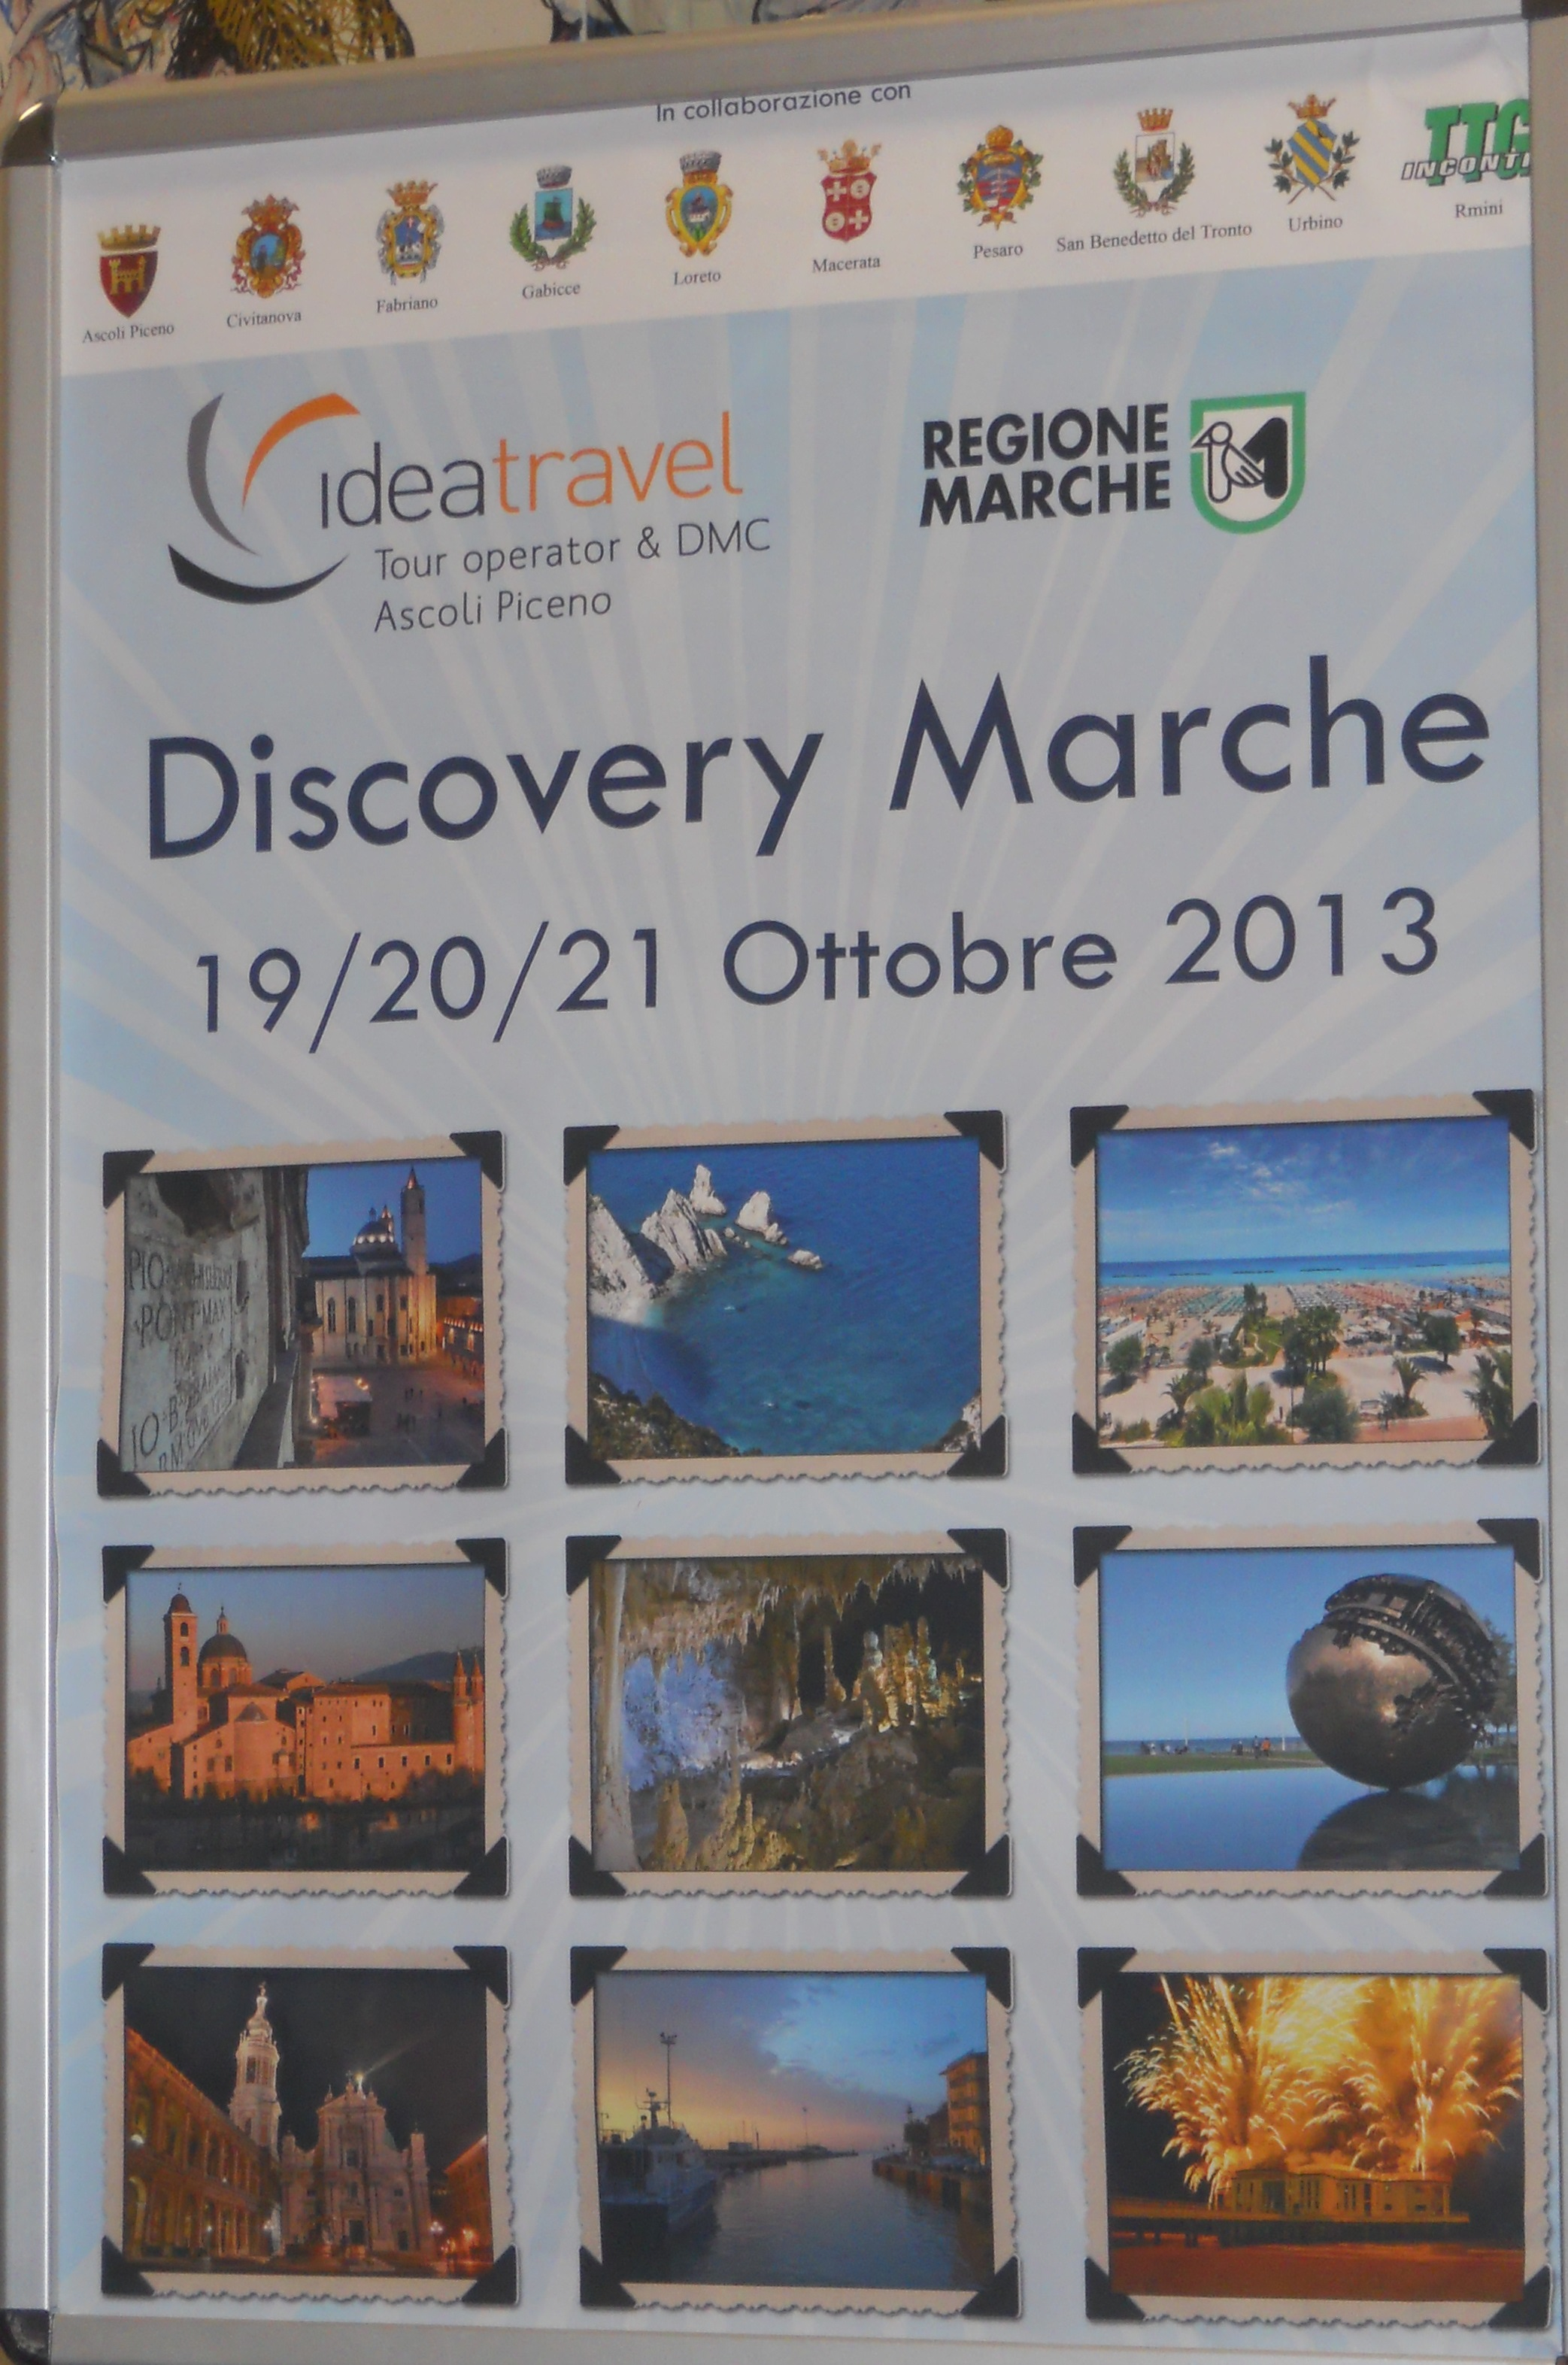 Discovery Marche 2013